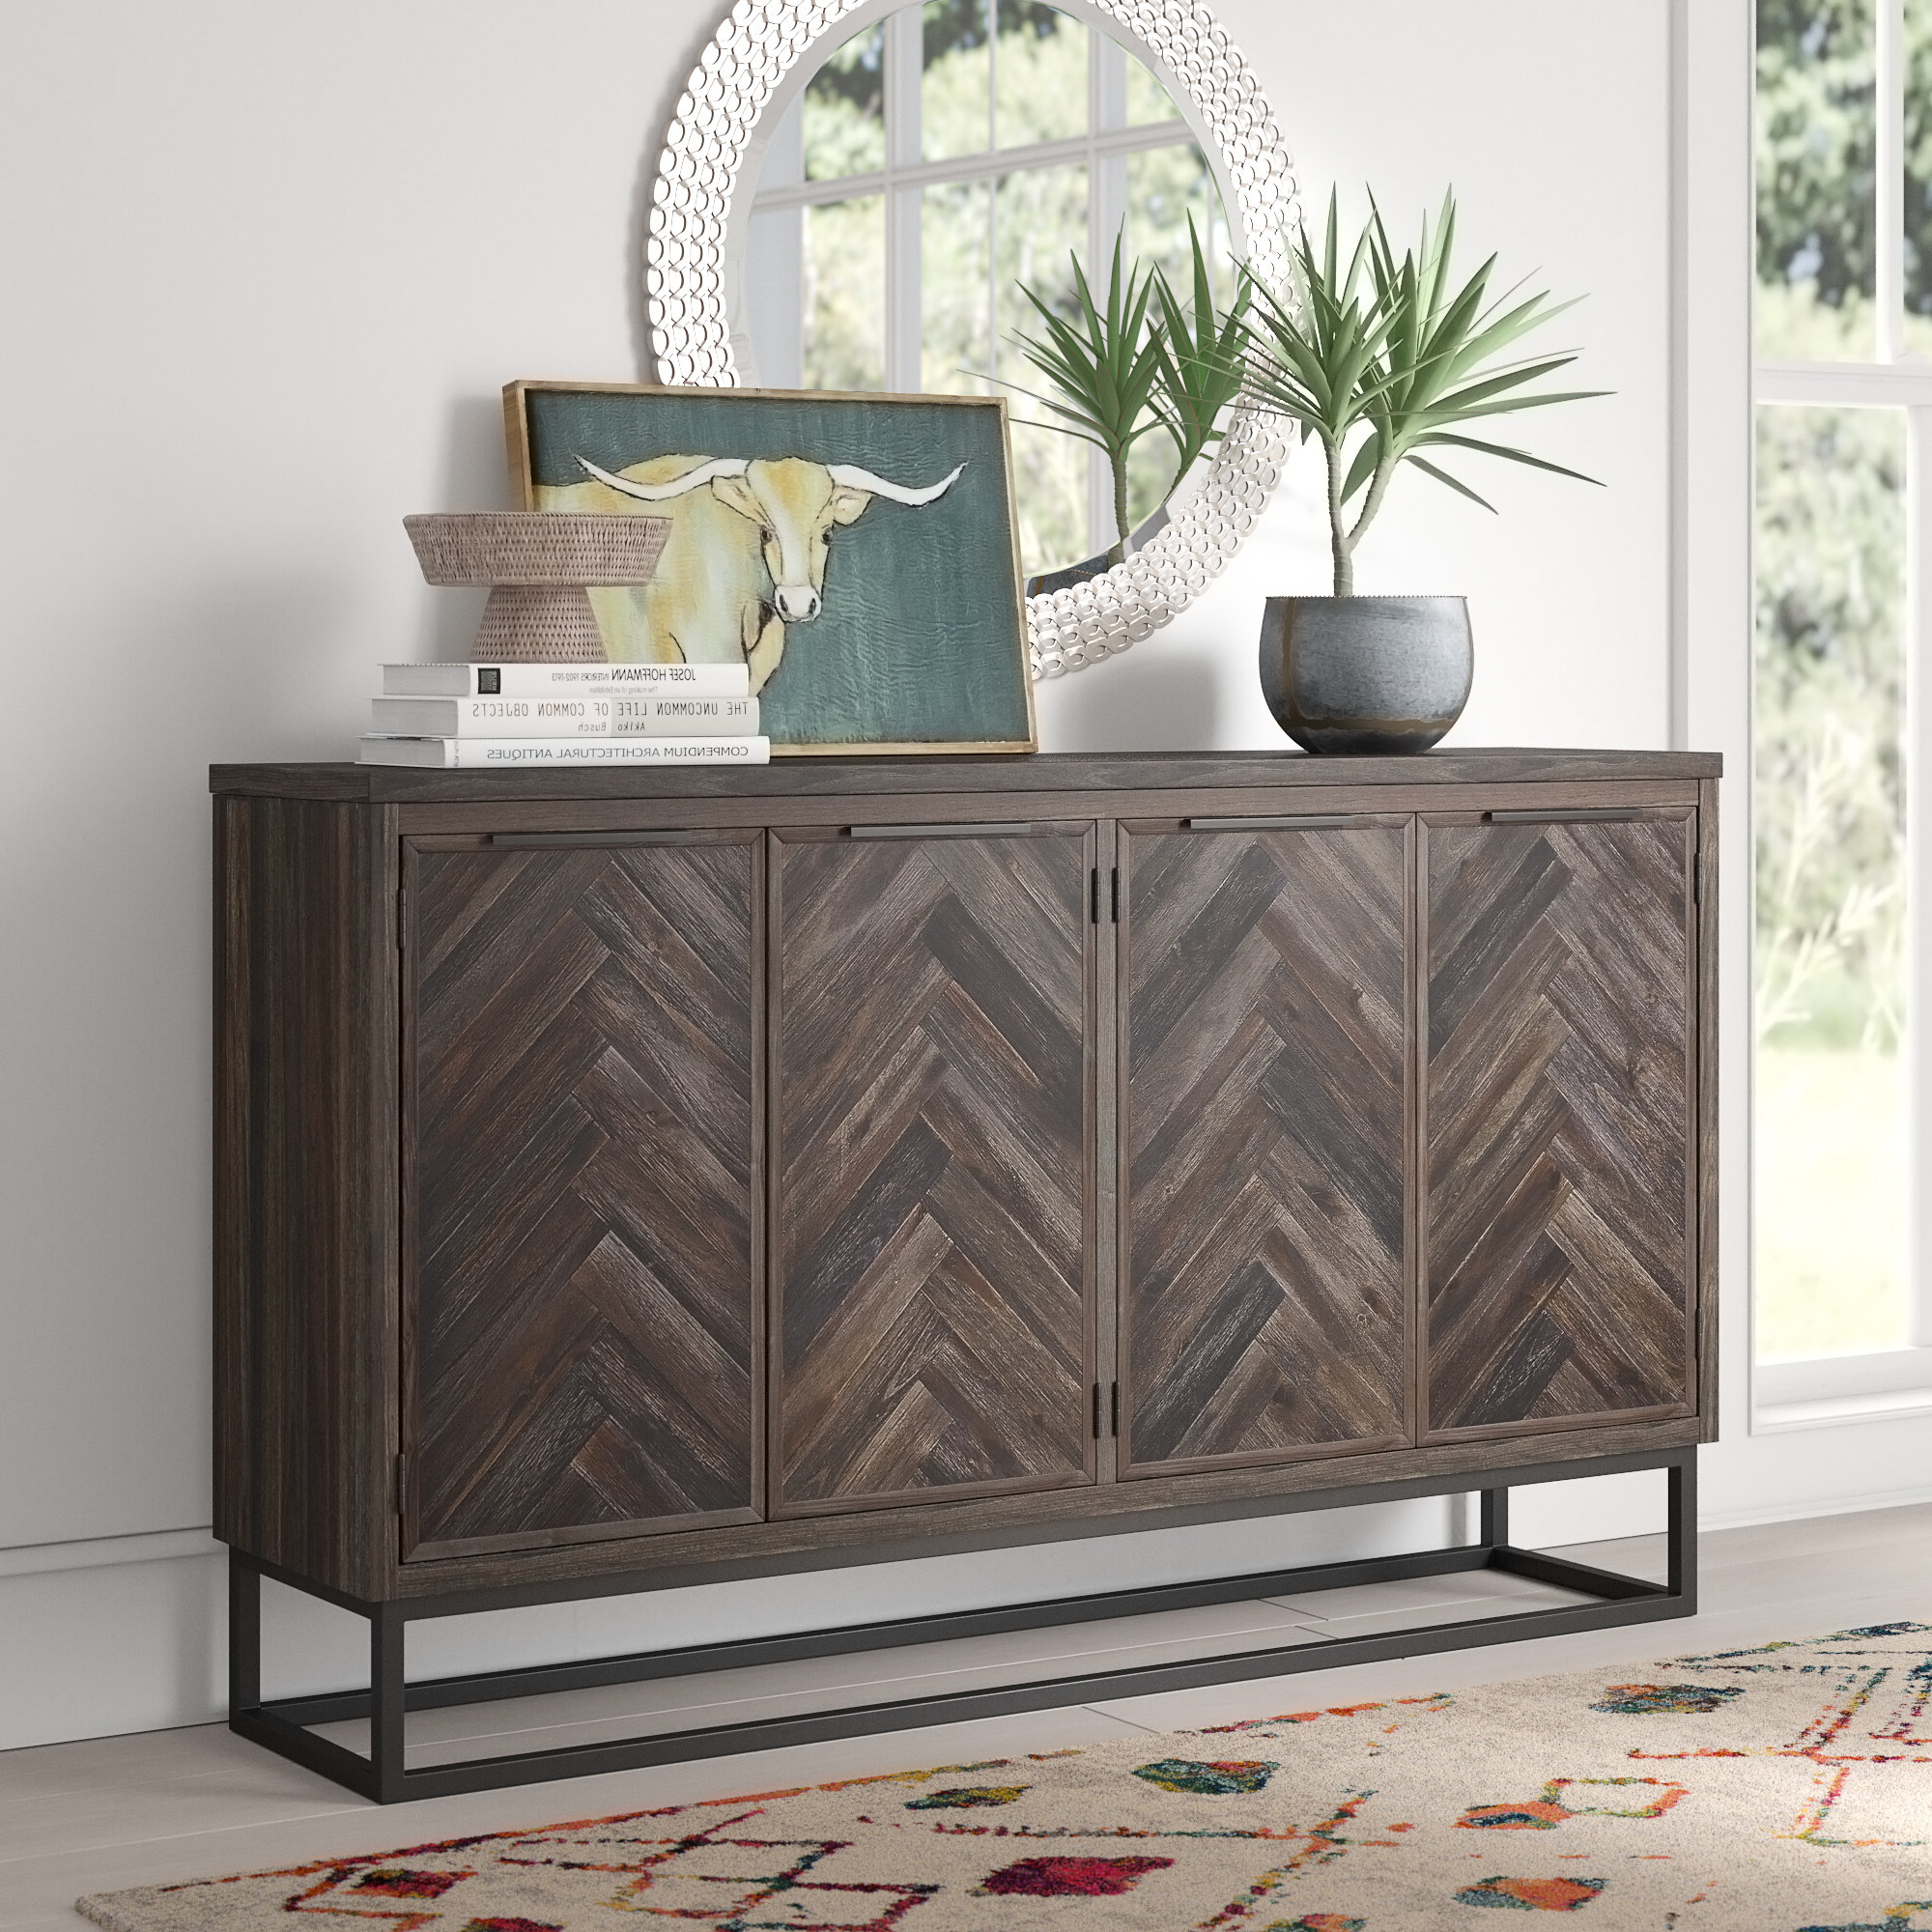 Popular 80 Inch Sideboard You'll Love In  (View 16 of 20)